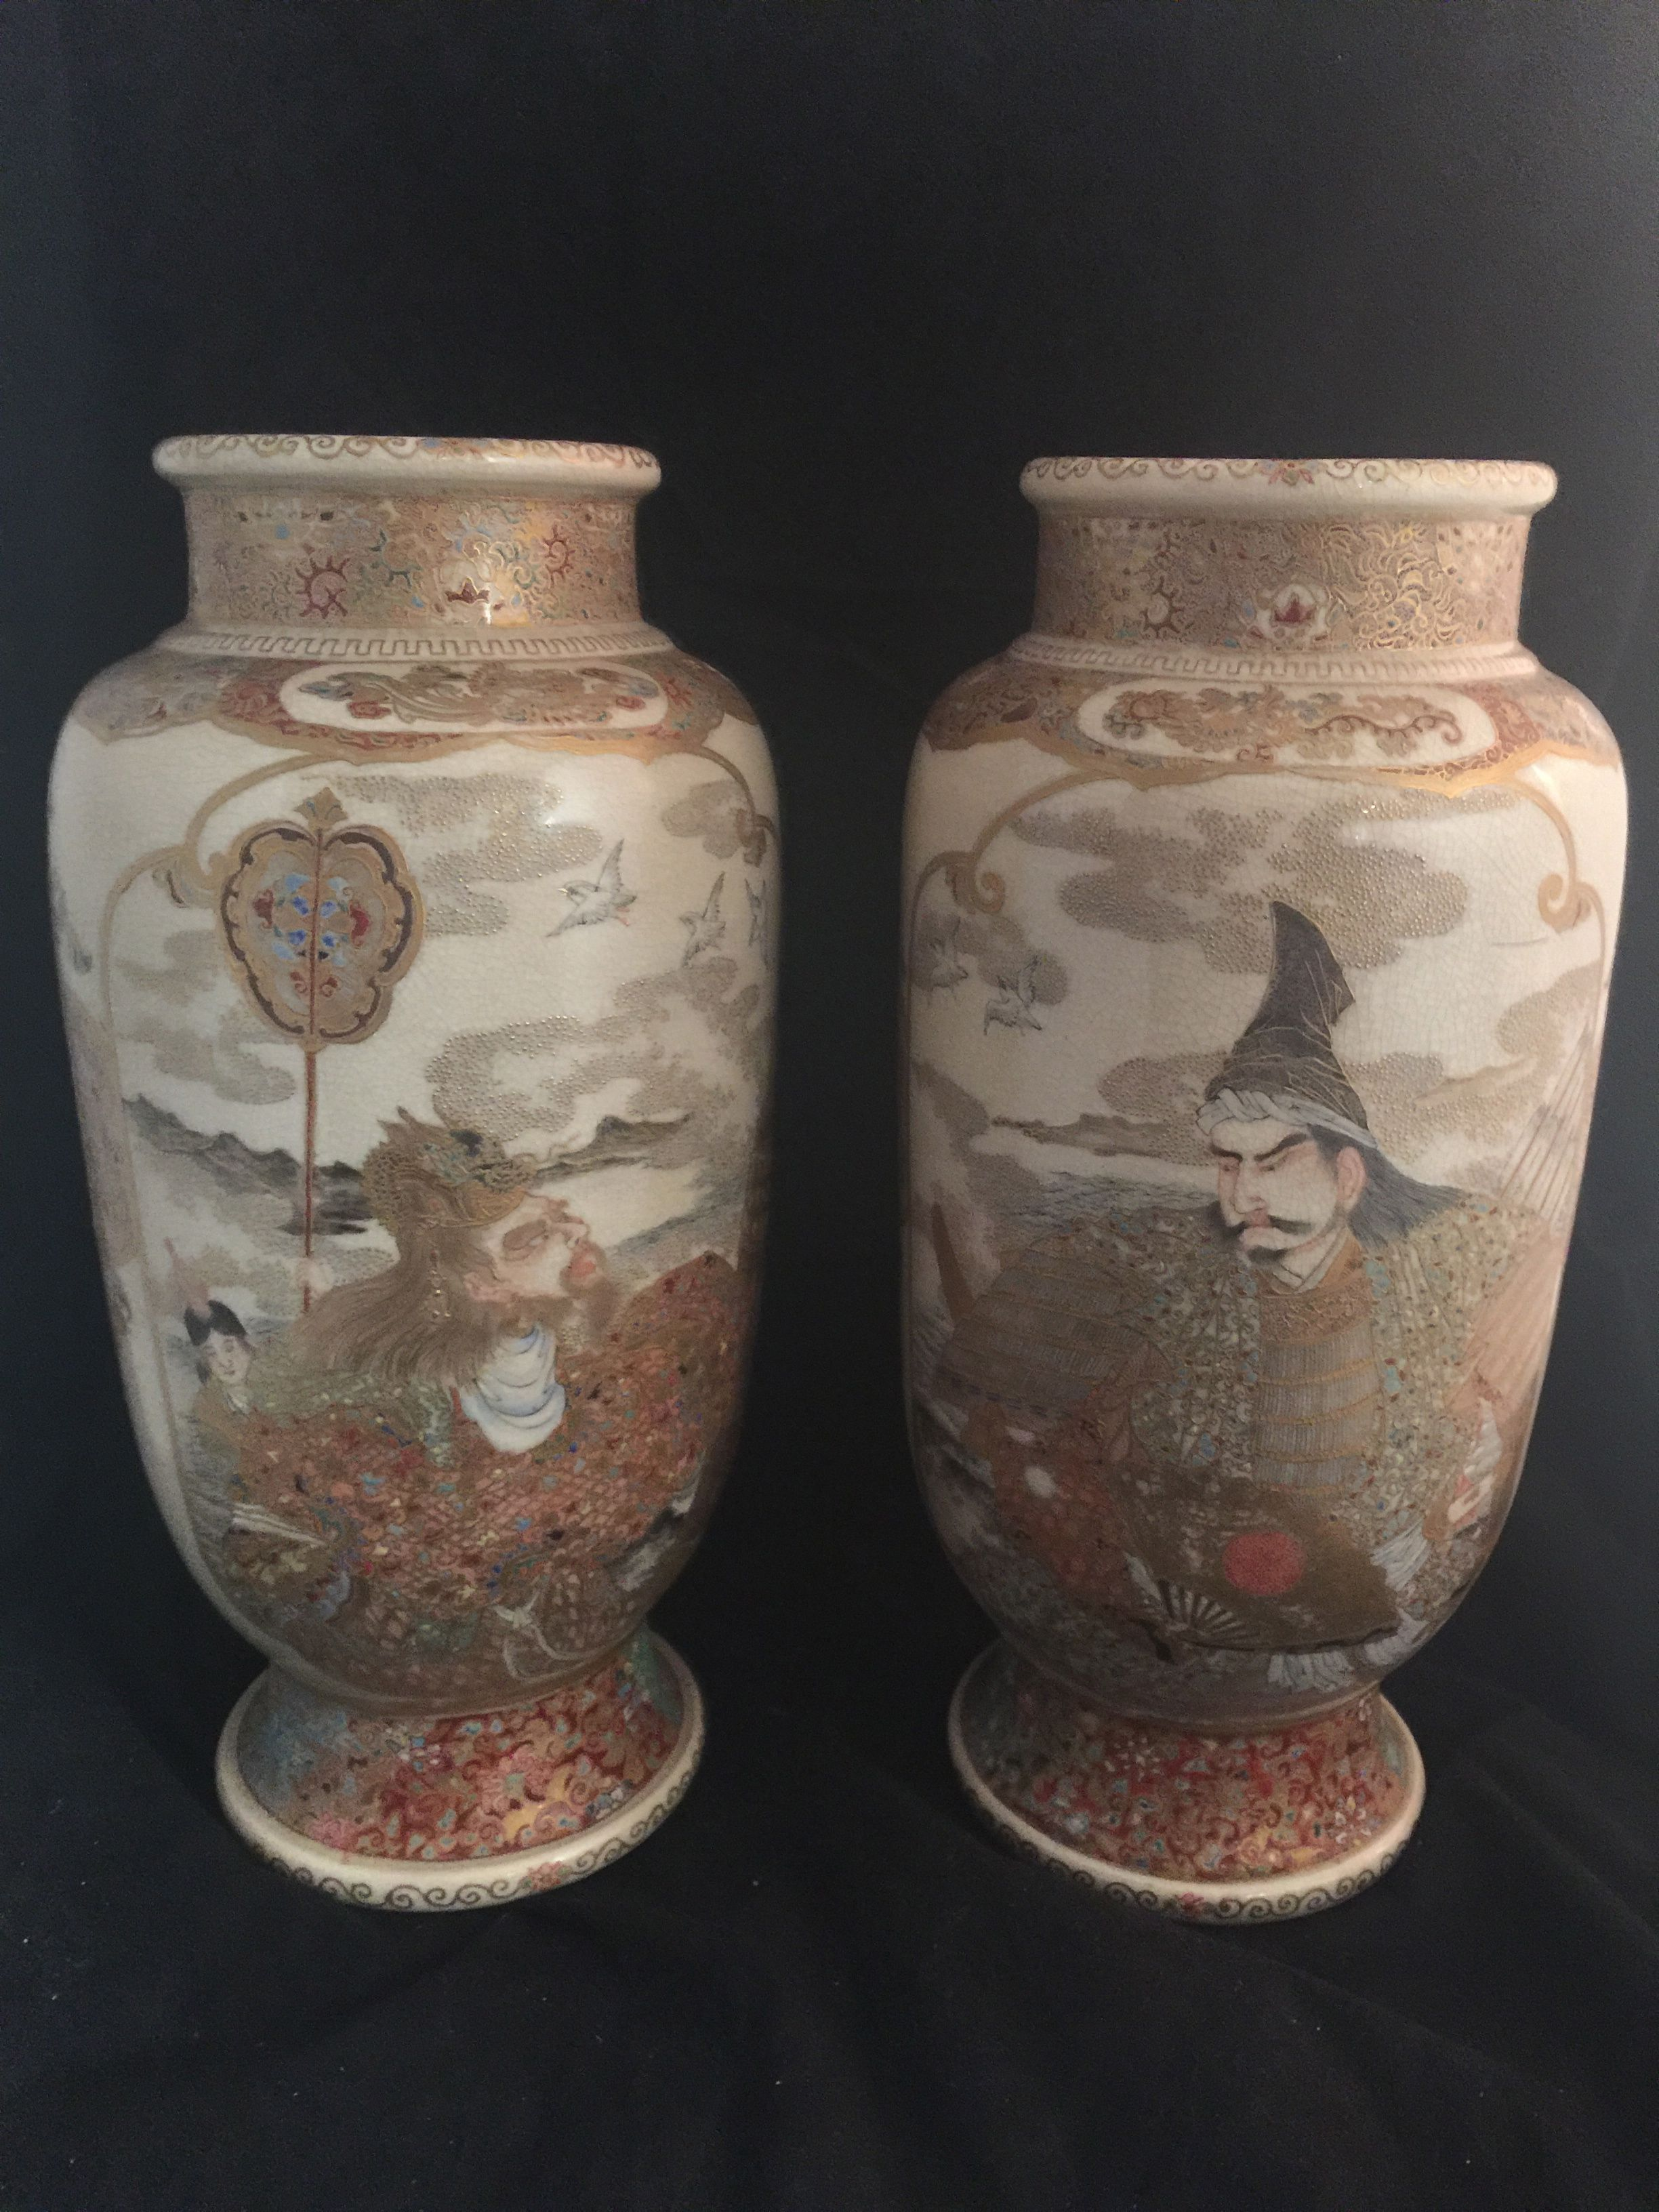 Rare antique Japanese Satsuma Vases